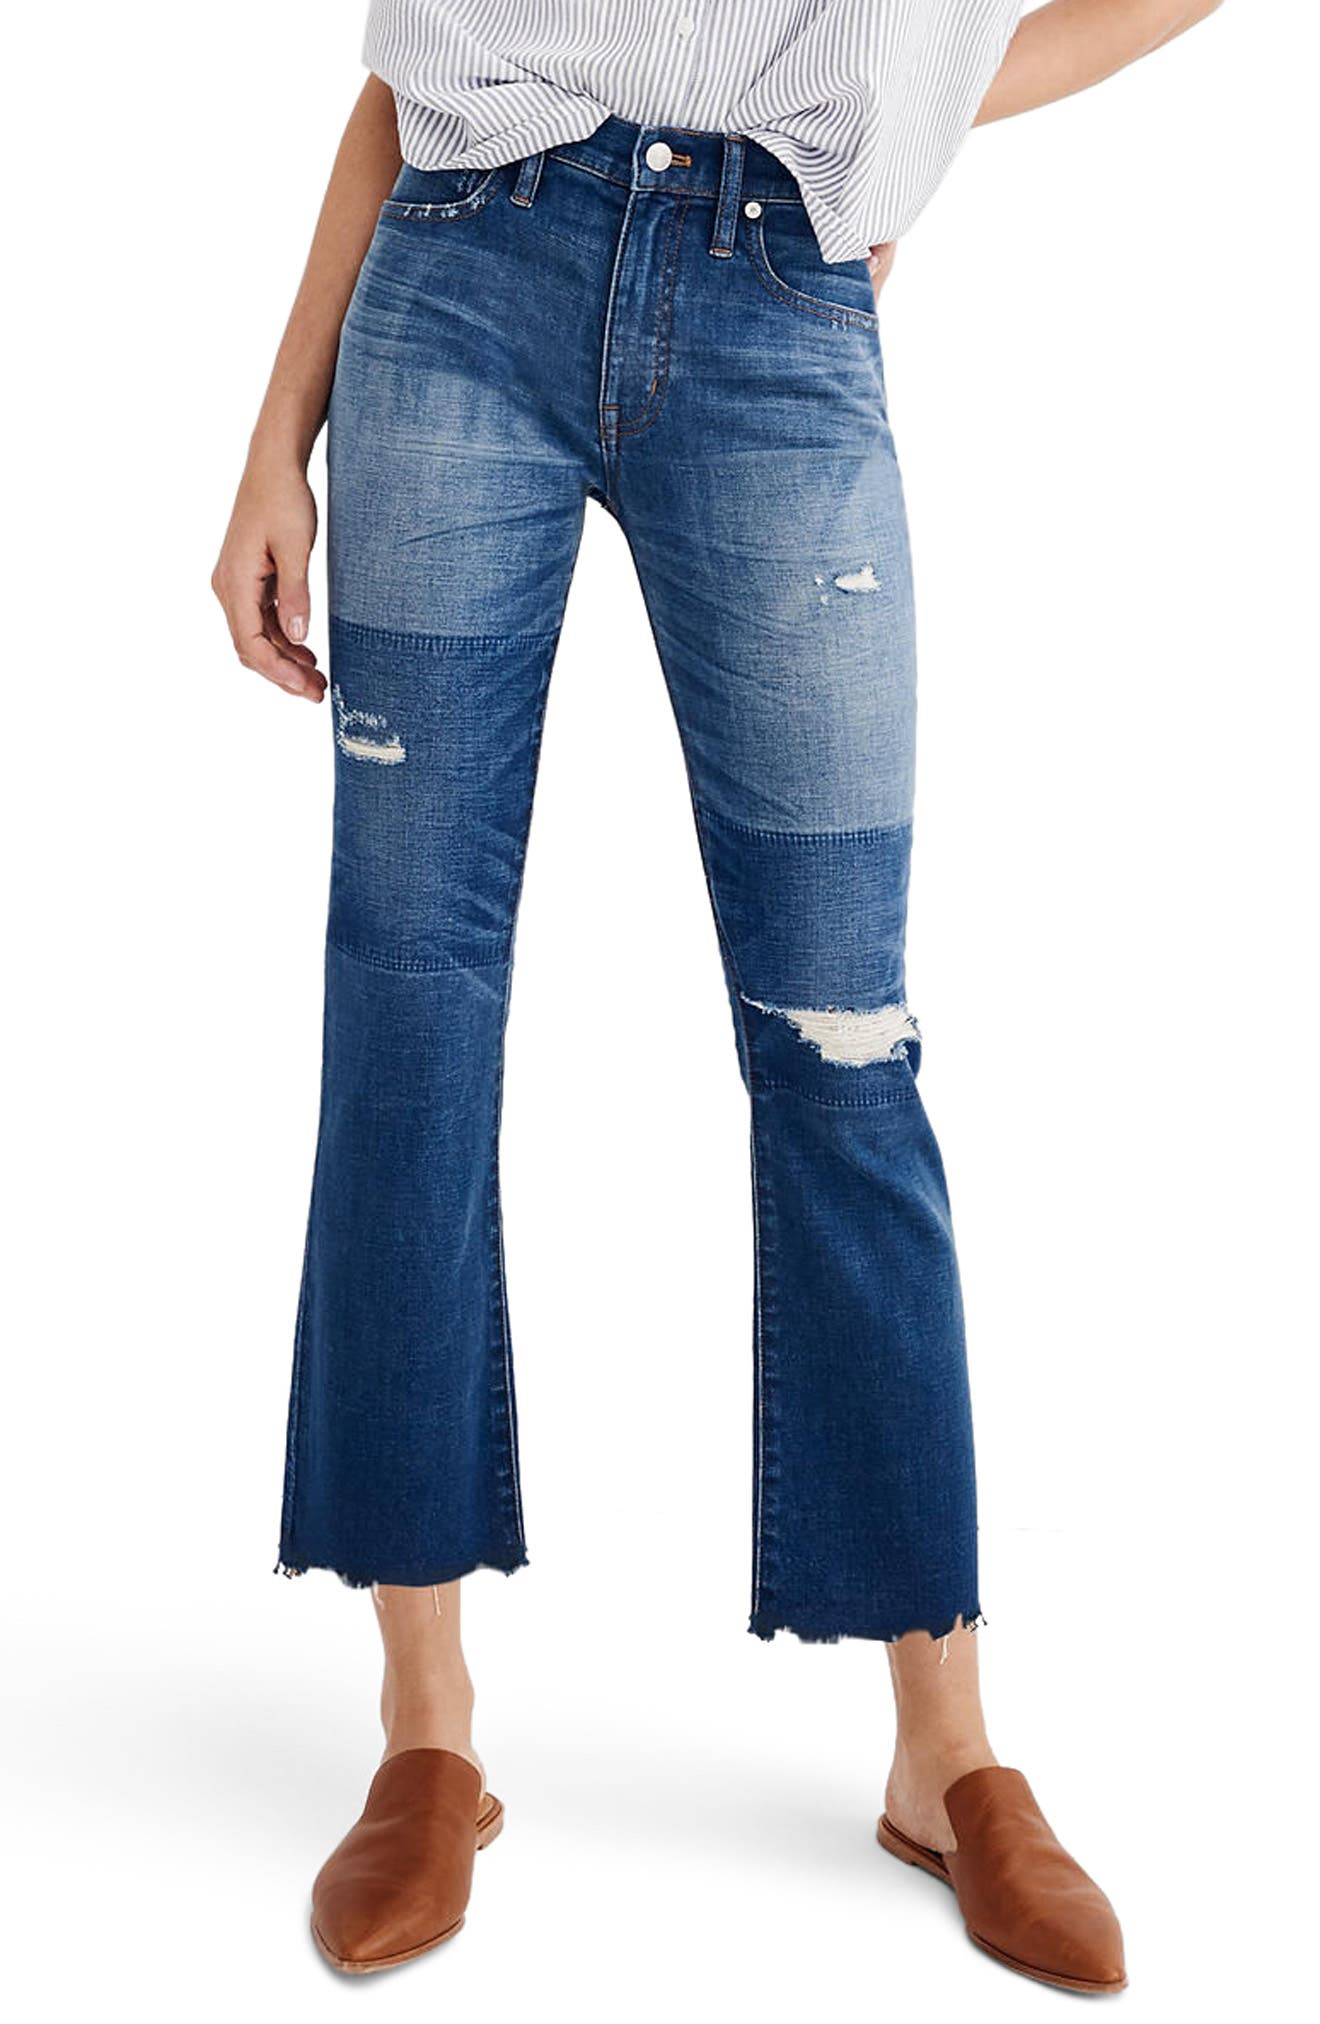 Cali Ripped Demi Bootleg Crop Jeans,                         Main,                         color, 400